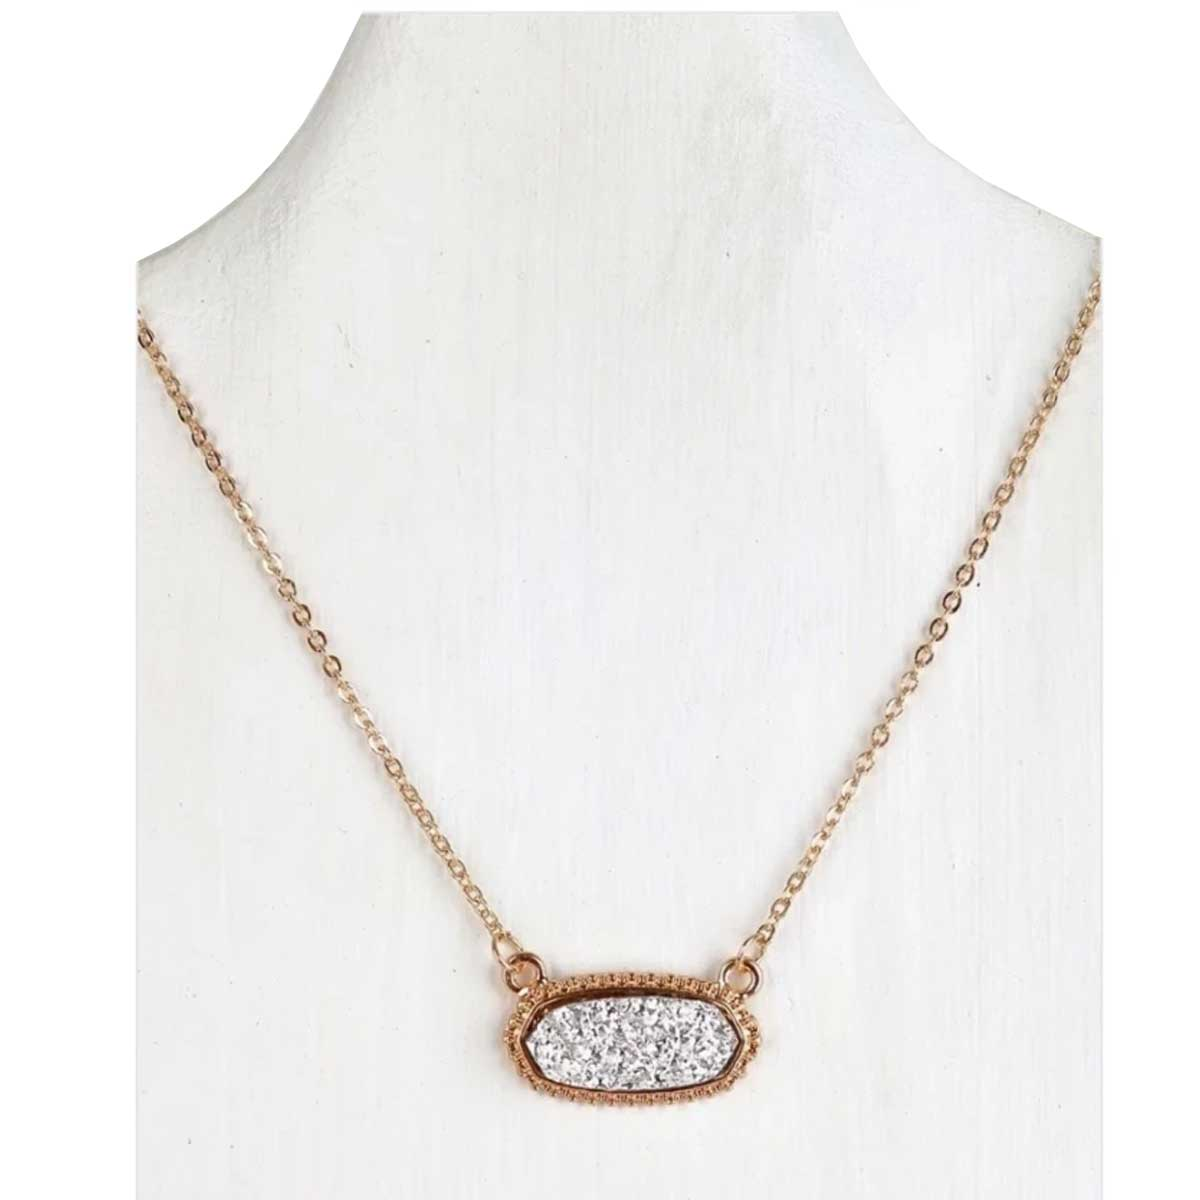 Urbanista Druzy Short Necklace